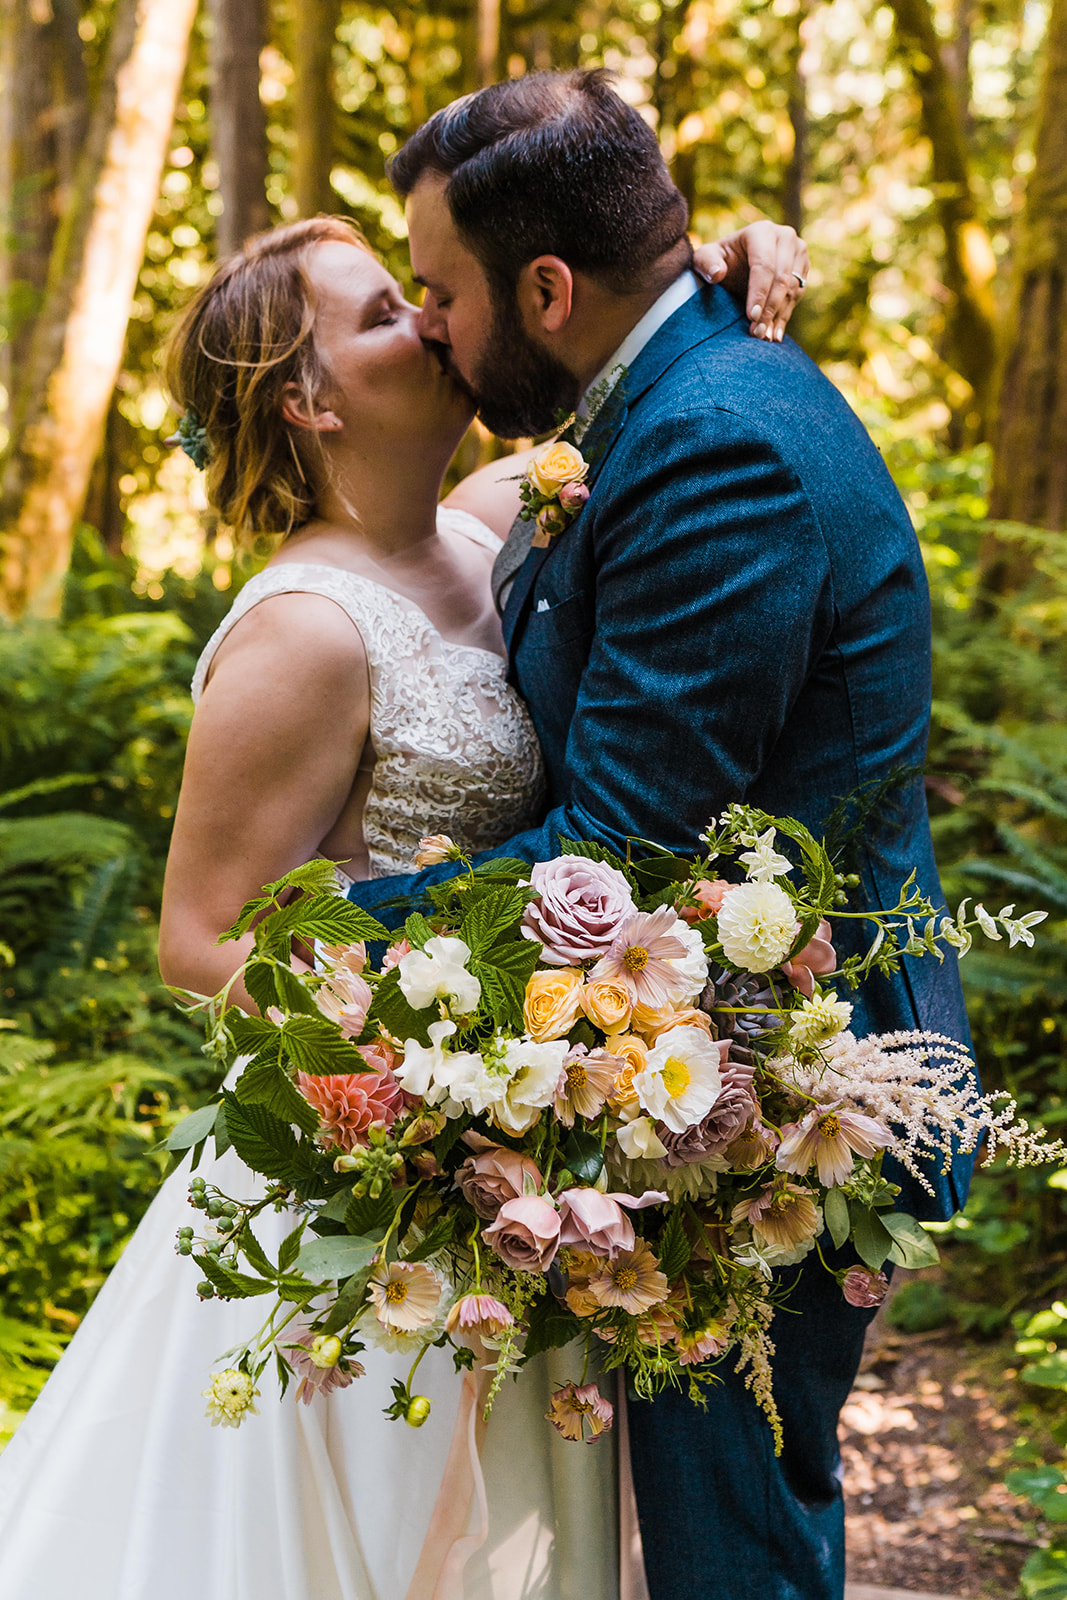 A couple kissing and holding a summer bridal bouquet full of vibrant summer flowers in peach and mauve tones